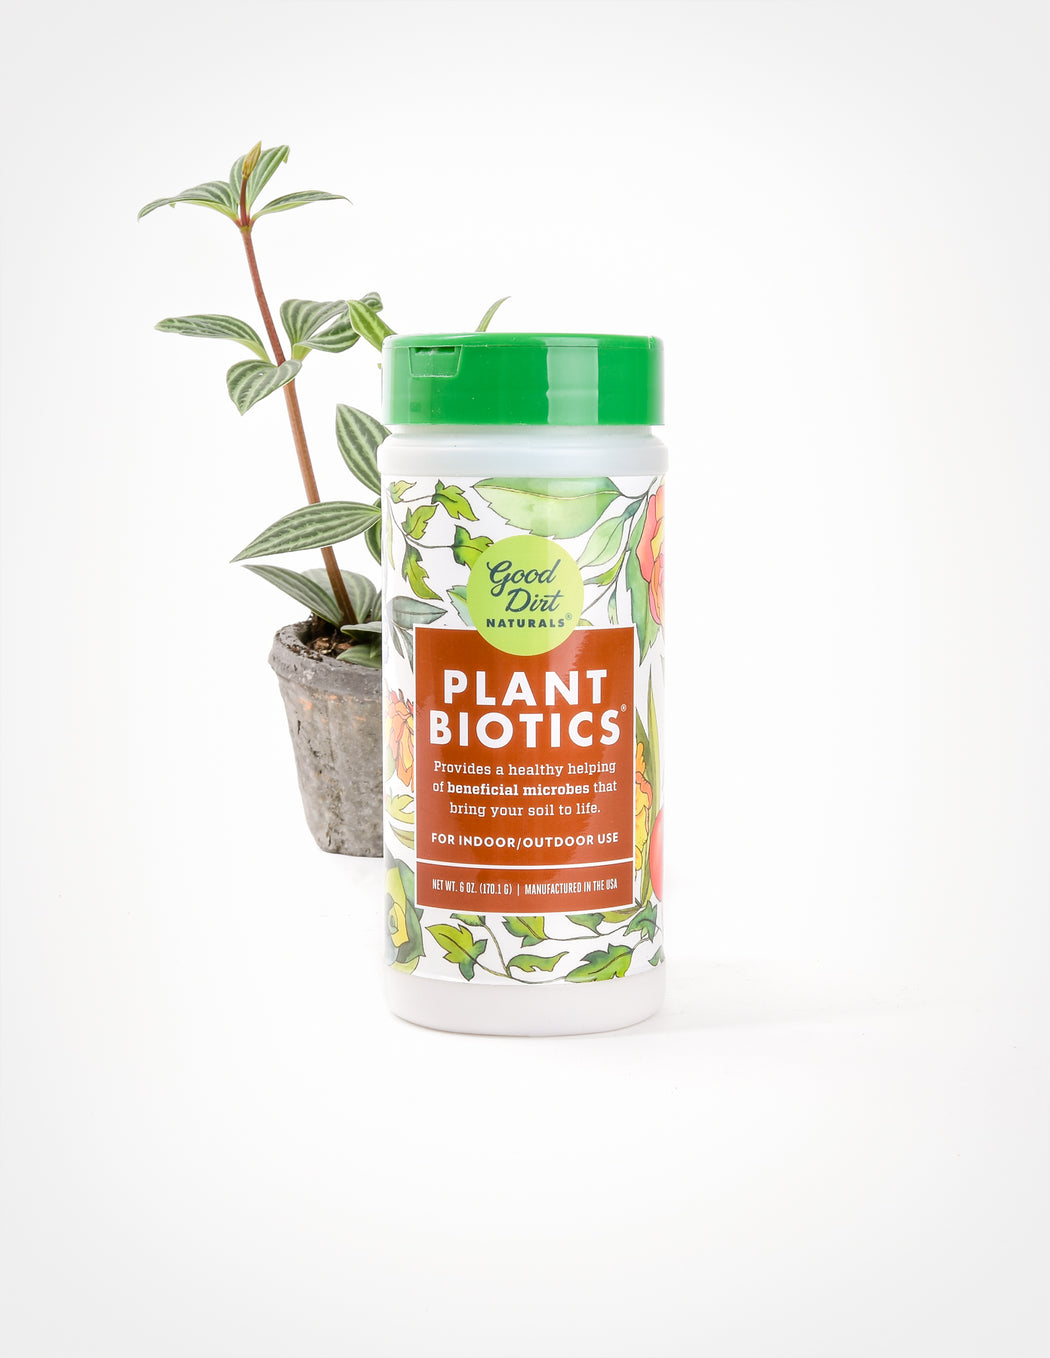 Good Dirt Plant Biotics - Pistils Nursery - Probiotic plant health